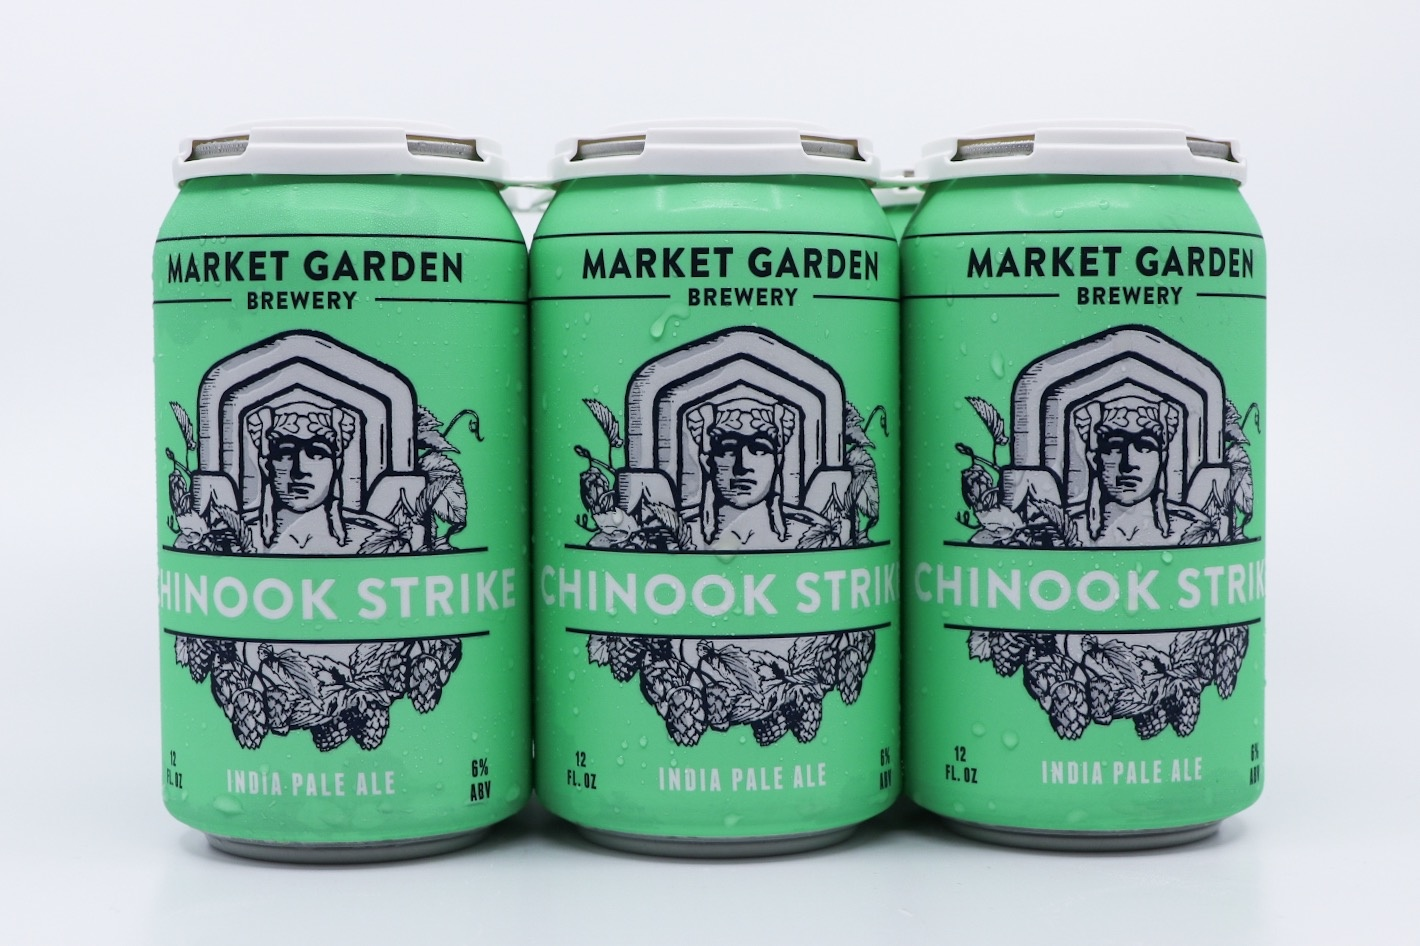 Chinook Strike IPA 6-pack (cans)